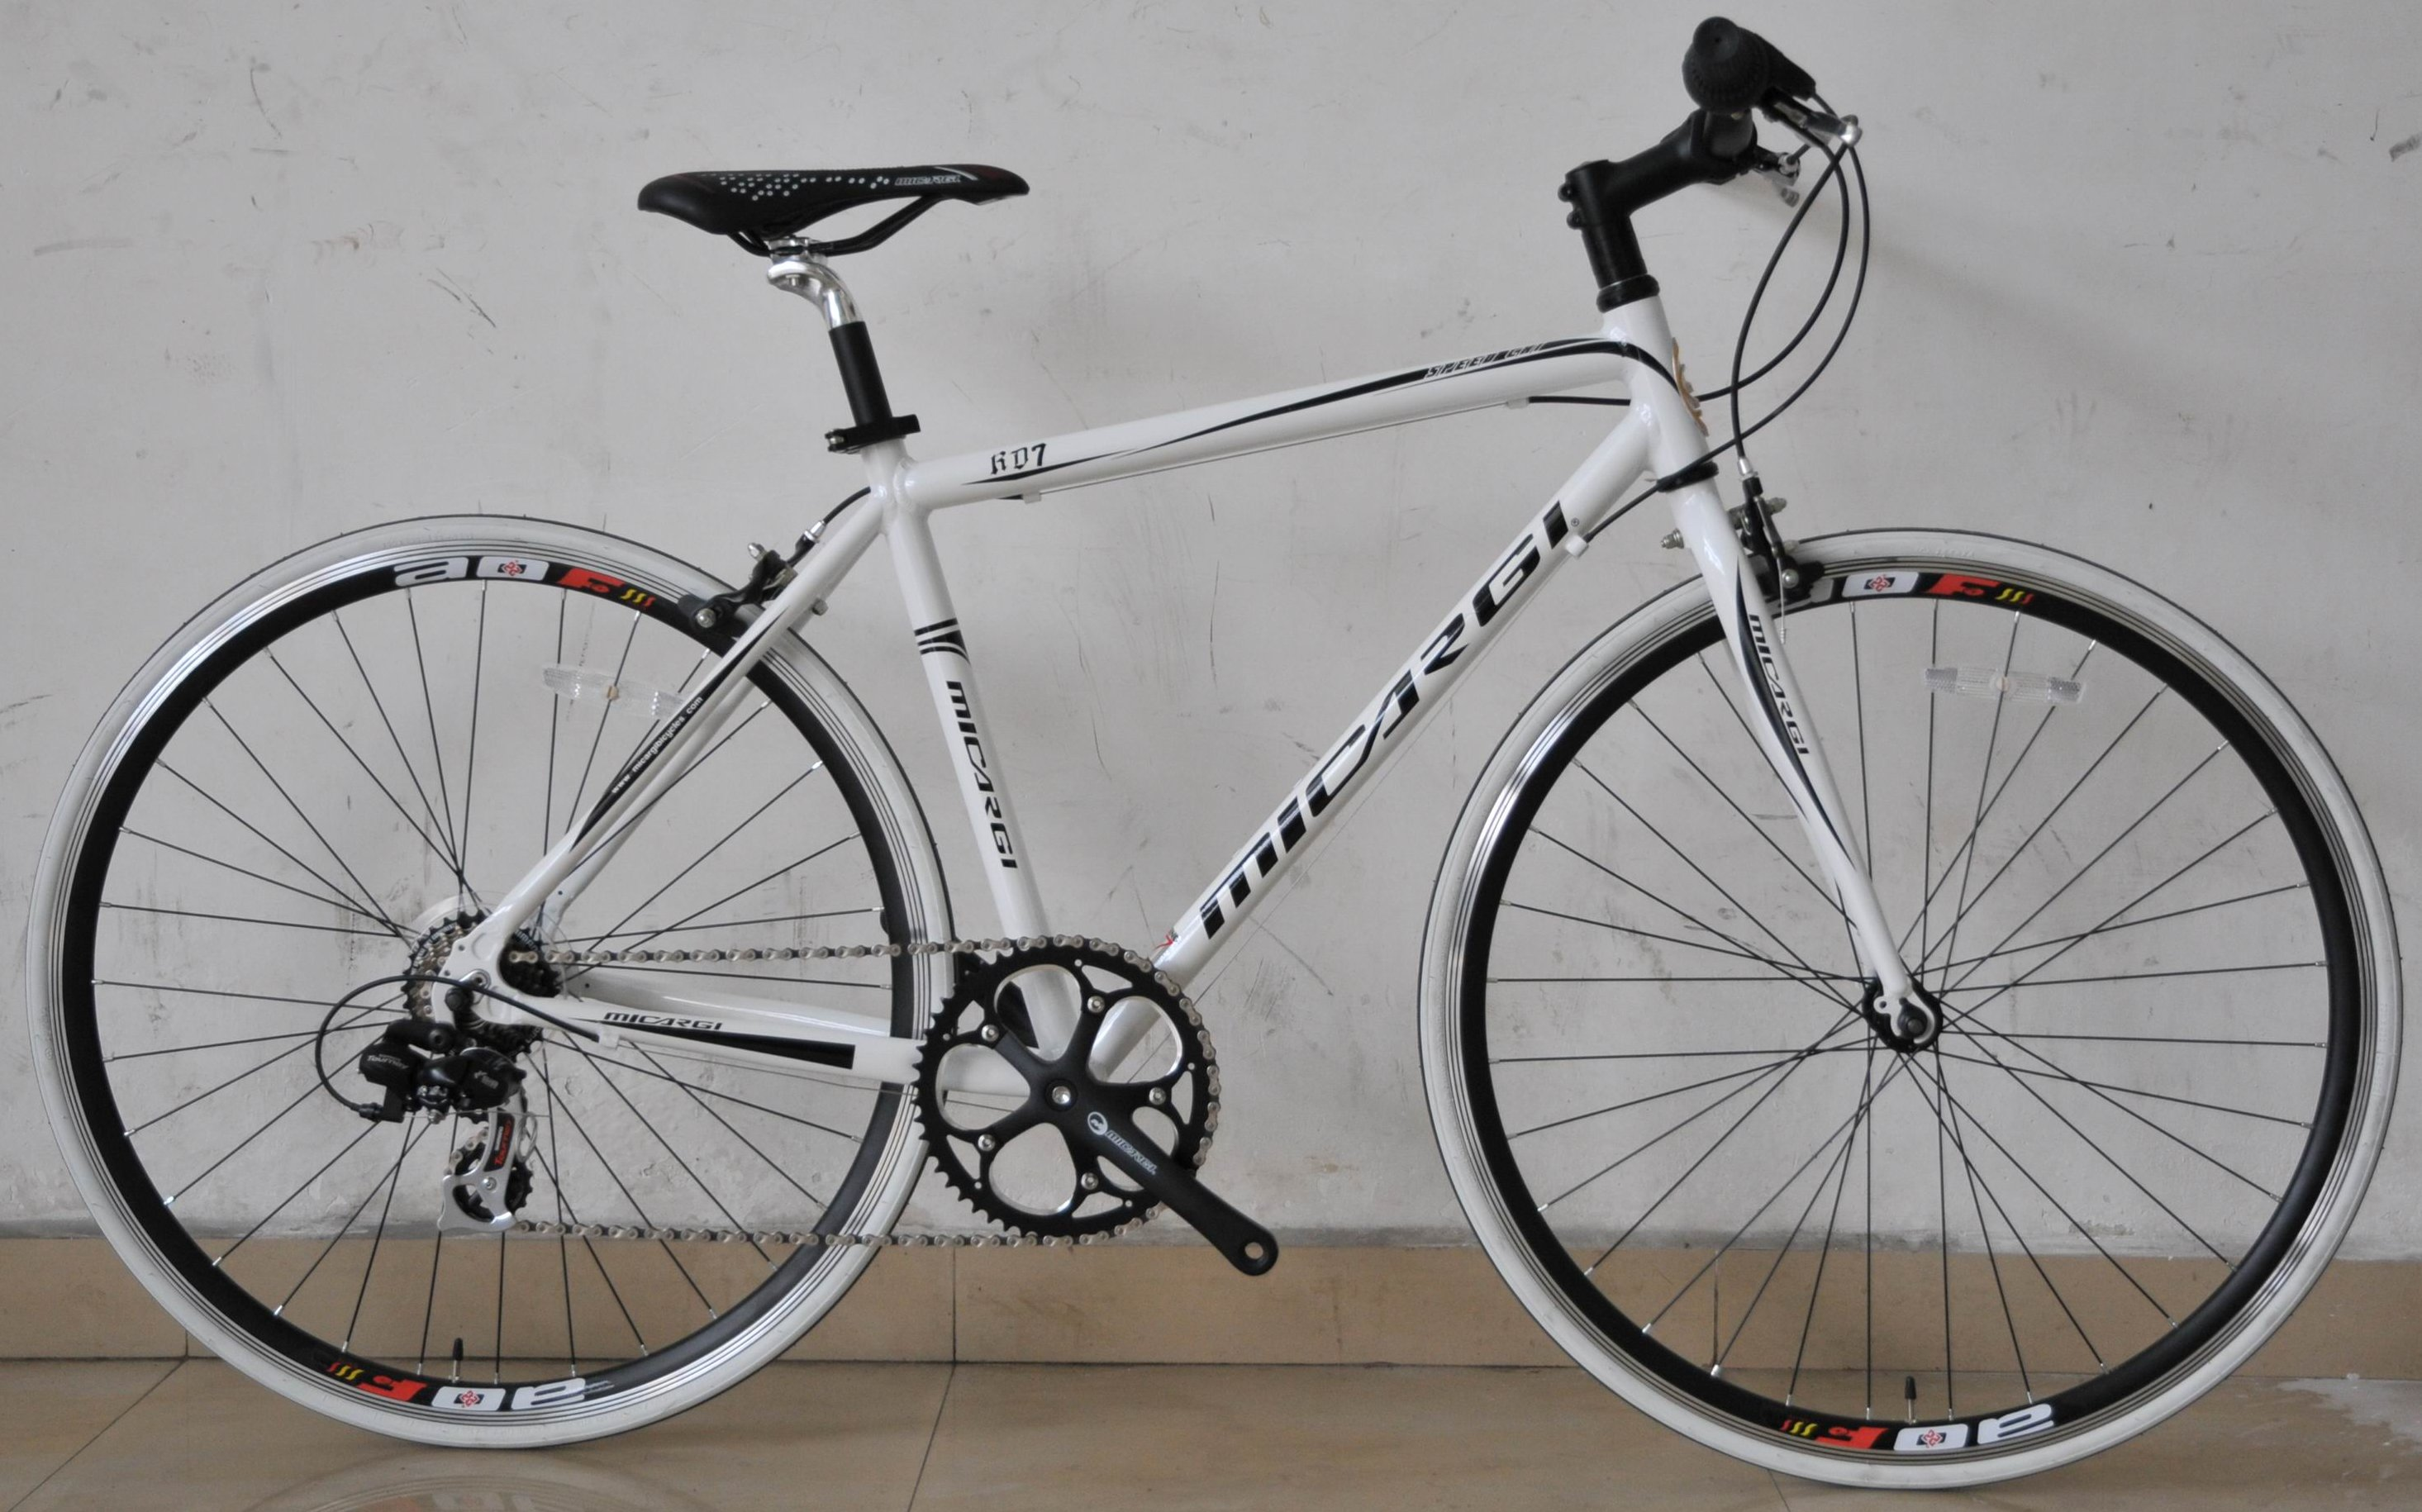 Micargi RD 7 Aluminum 7 Speed Shimano Road Bike